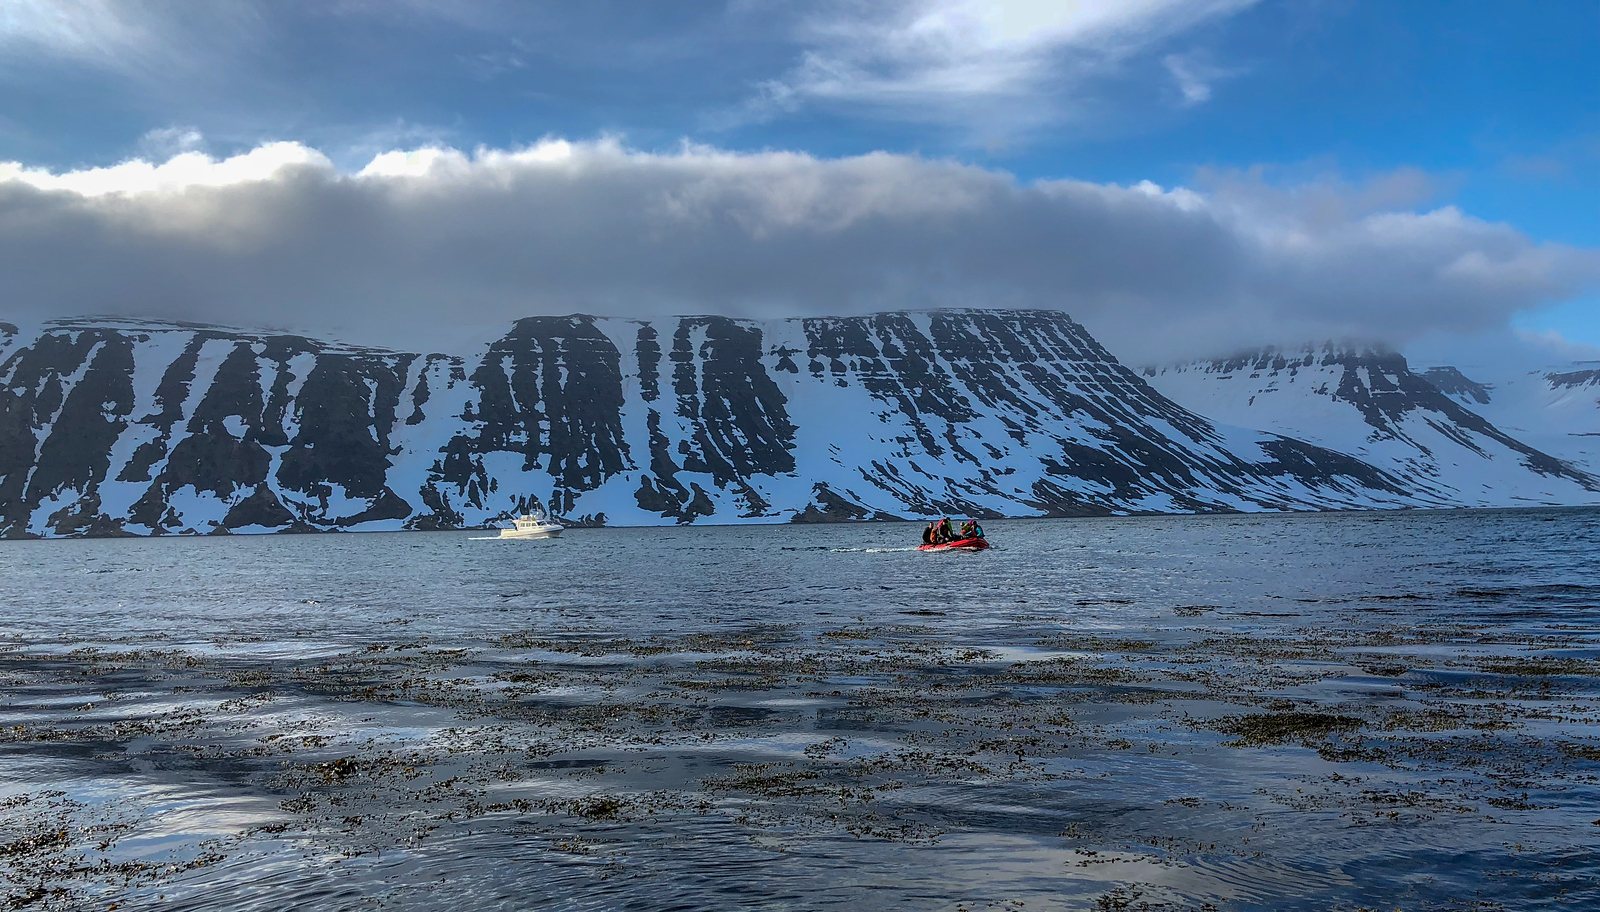 A novel-to-me ski approach: boat to zodiac. This became routine as the week went on. The background is typical of the Westfjords region - steep fjords with snow approaching sea level. Our local guide indicated that the snow level was low for this time of year - normally you can ski all the way to the ocean this time of year.